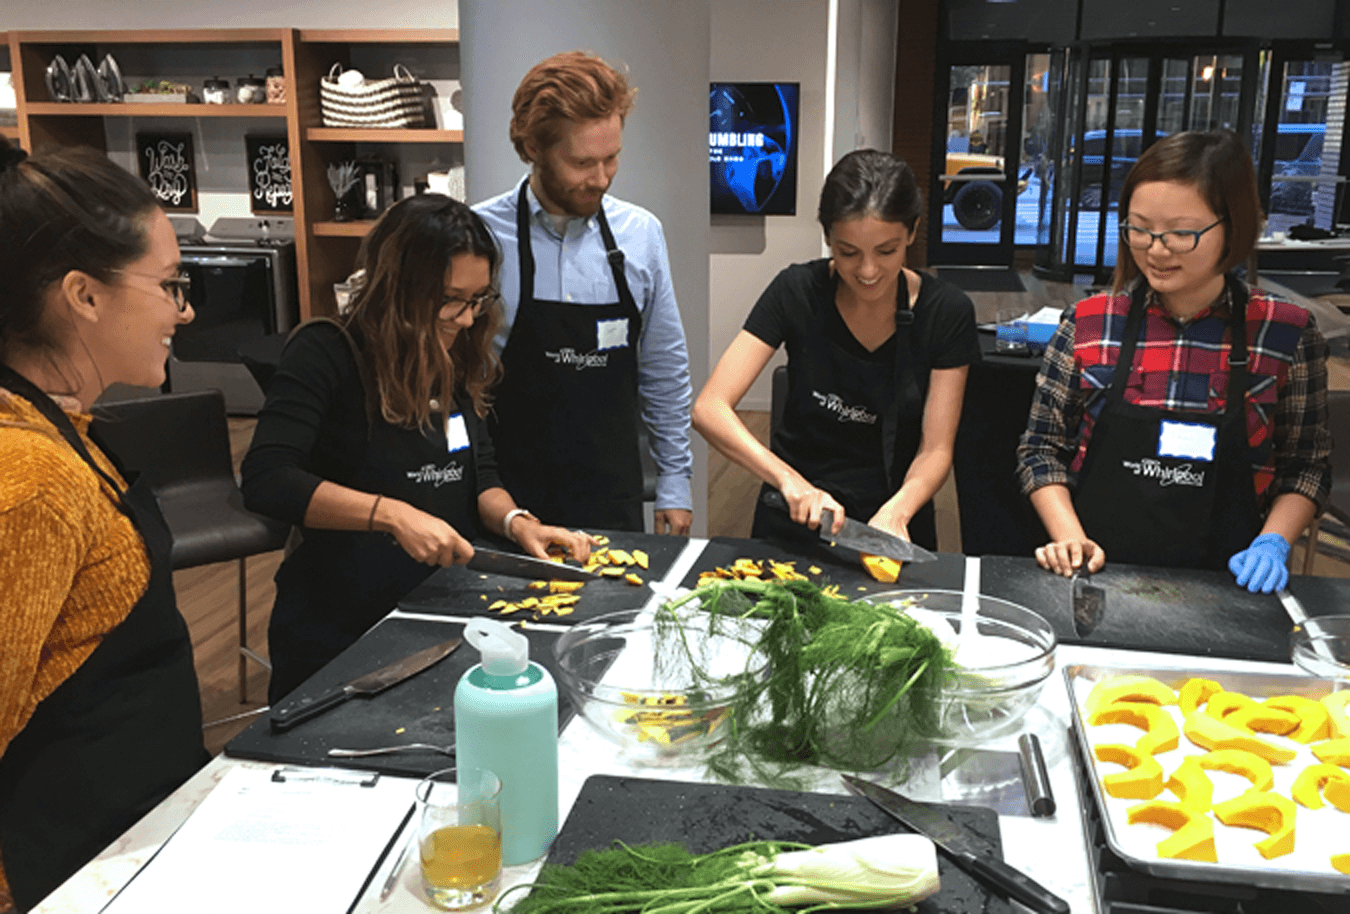 5 ingredient meal workshop